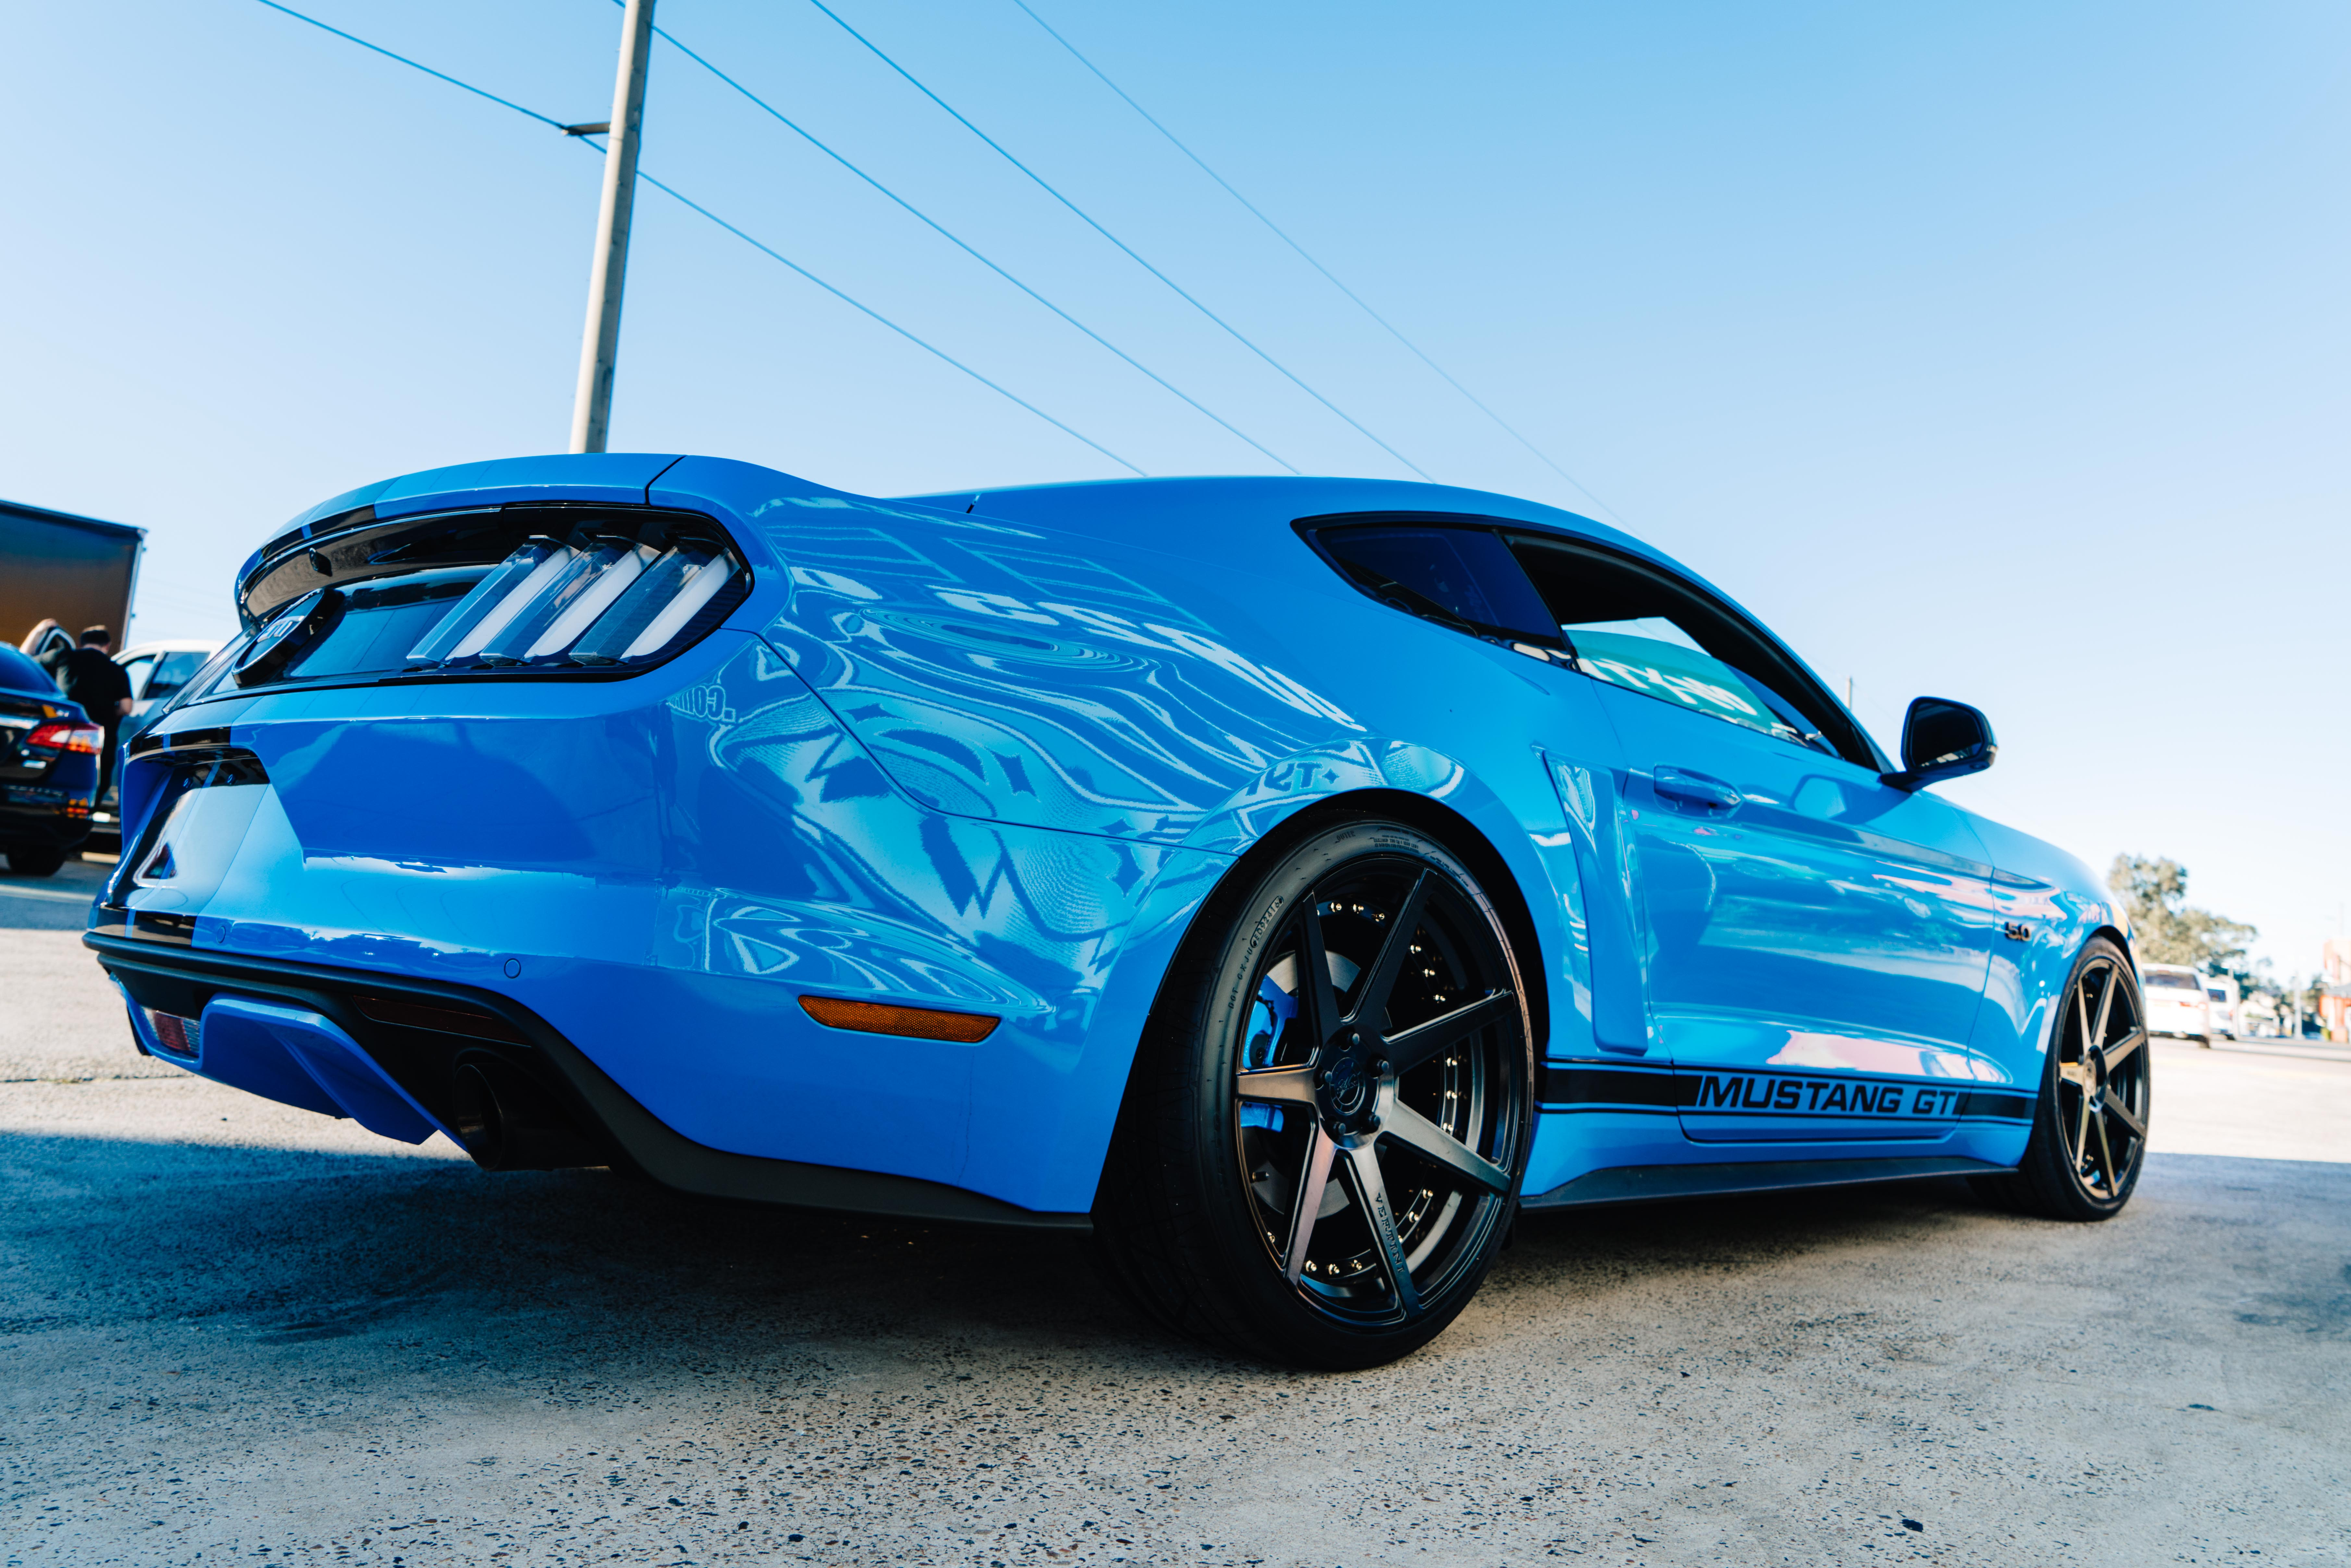 blue-mustang-fitted-with-black-wheels